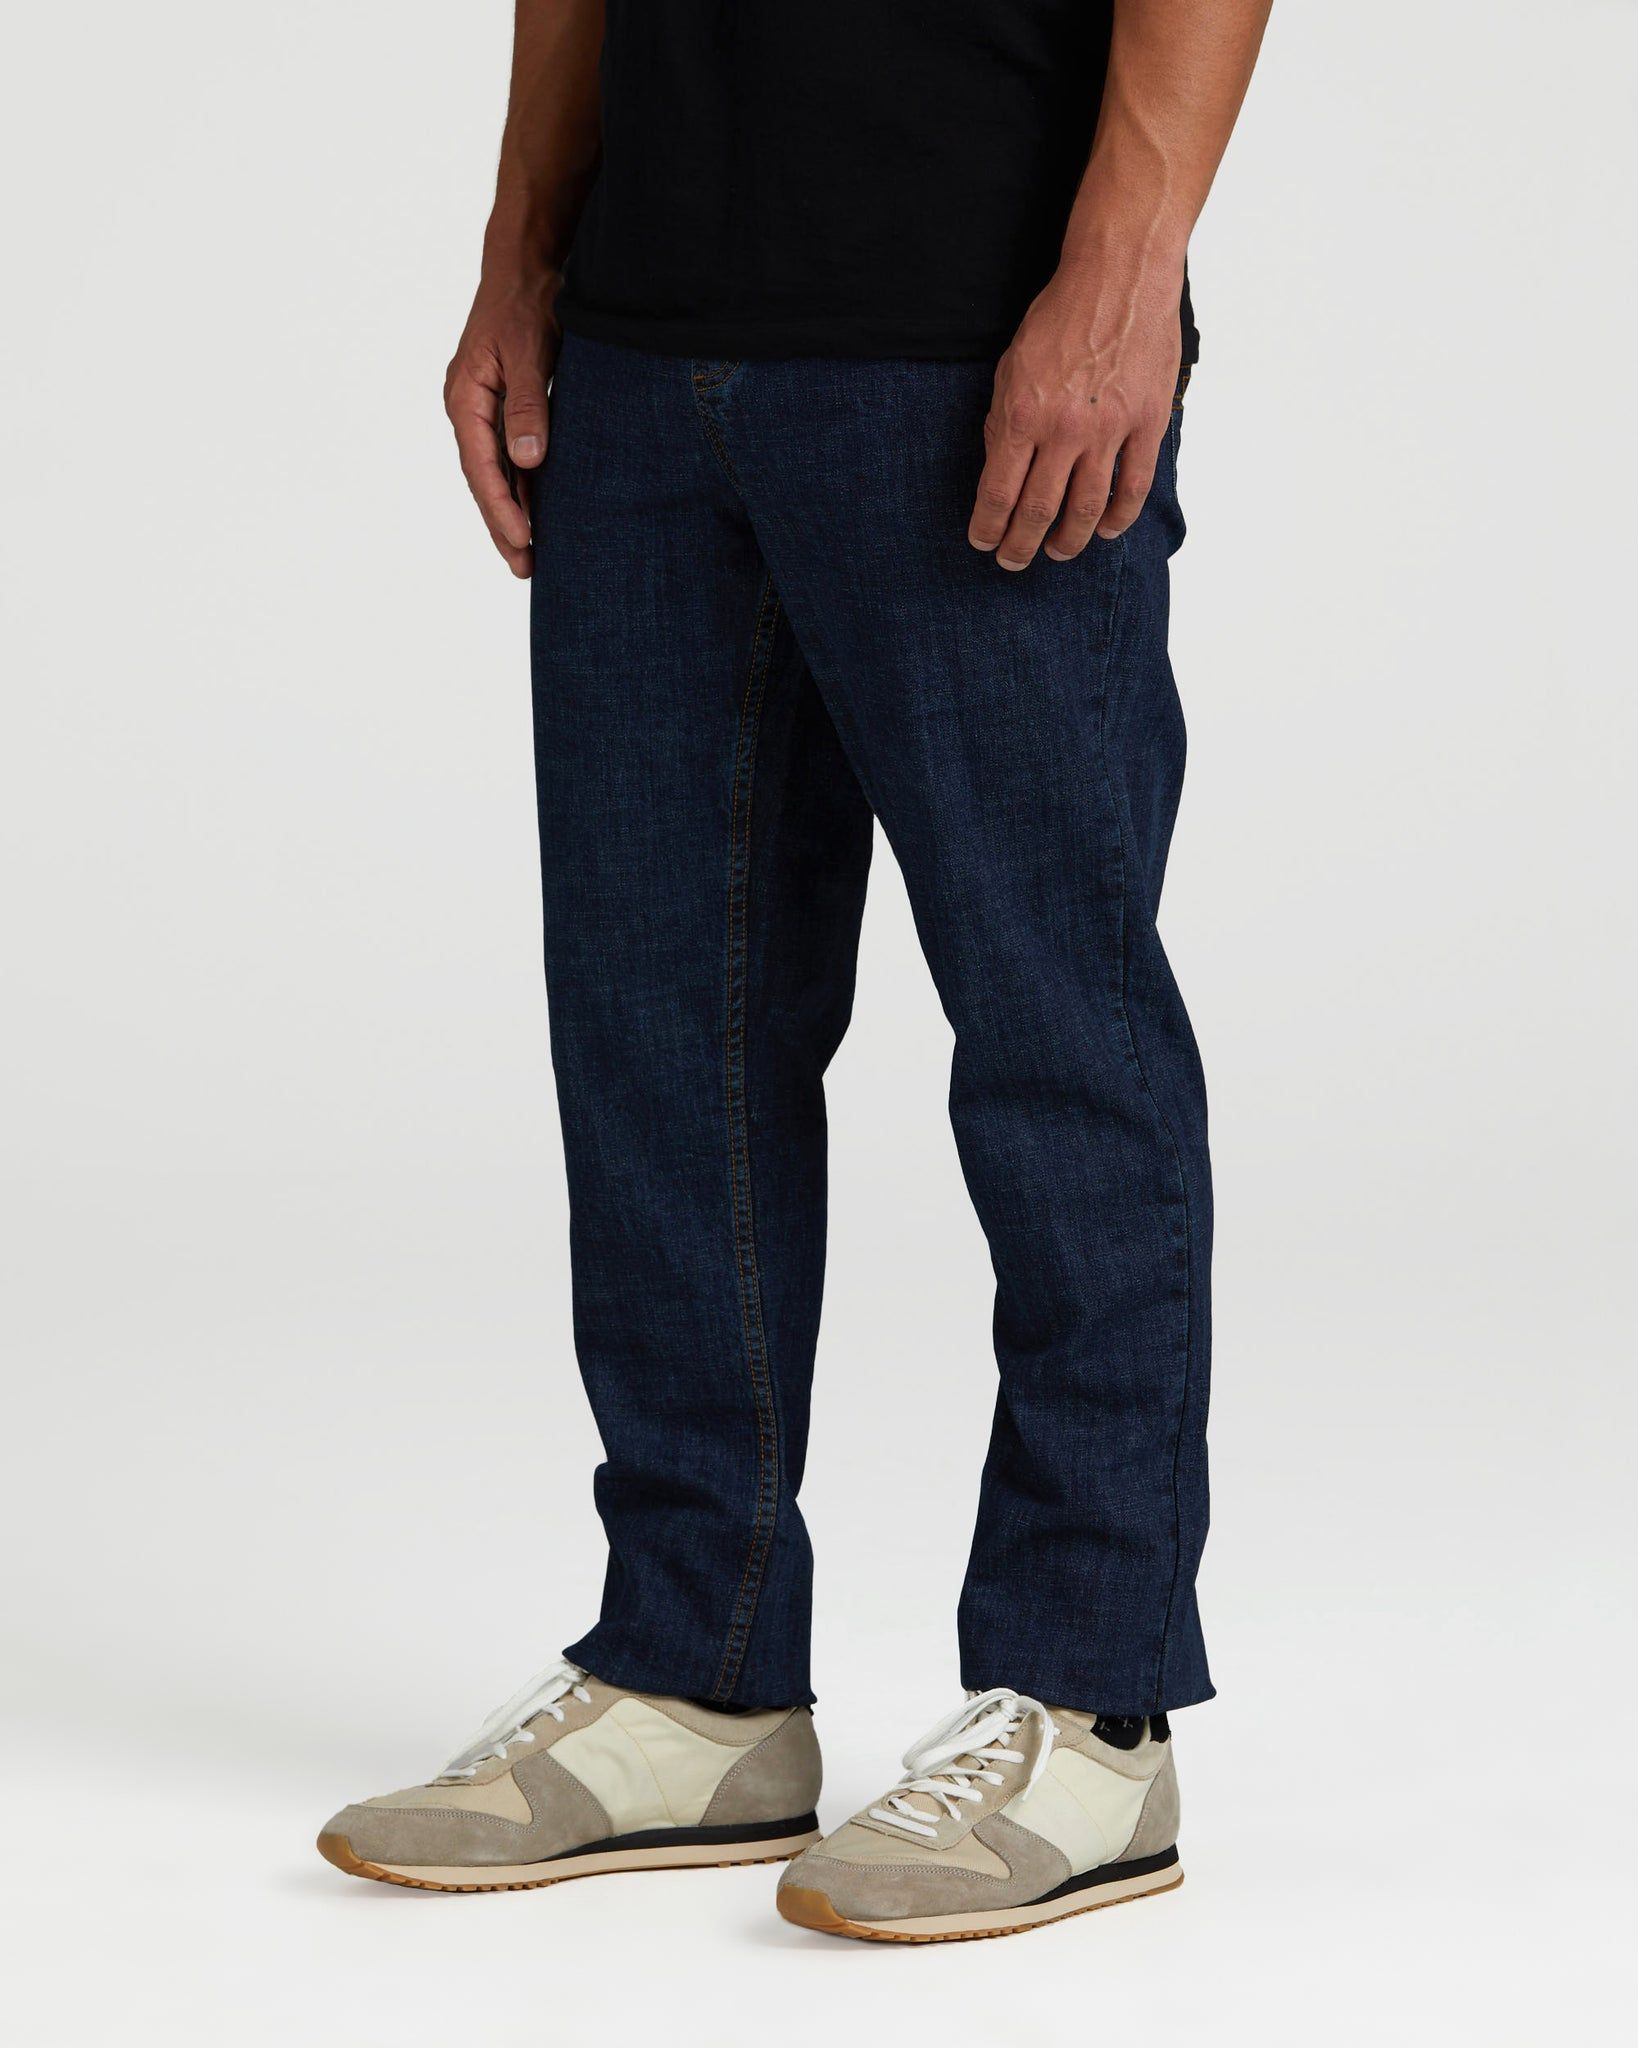 https://cdn.shopify.com/s/files/1/0249/6141/7252/files/NBZ_-_Mens_-_Jeans_-_1-fade.mp4?v=1574394961